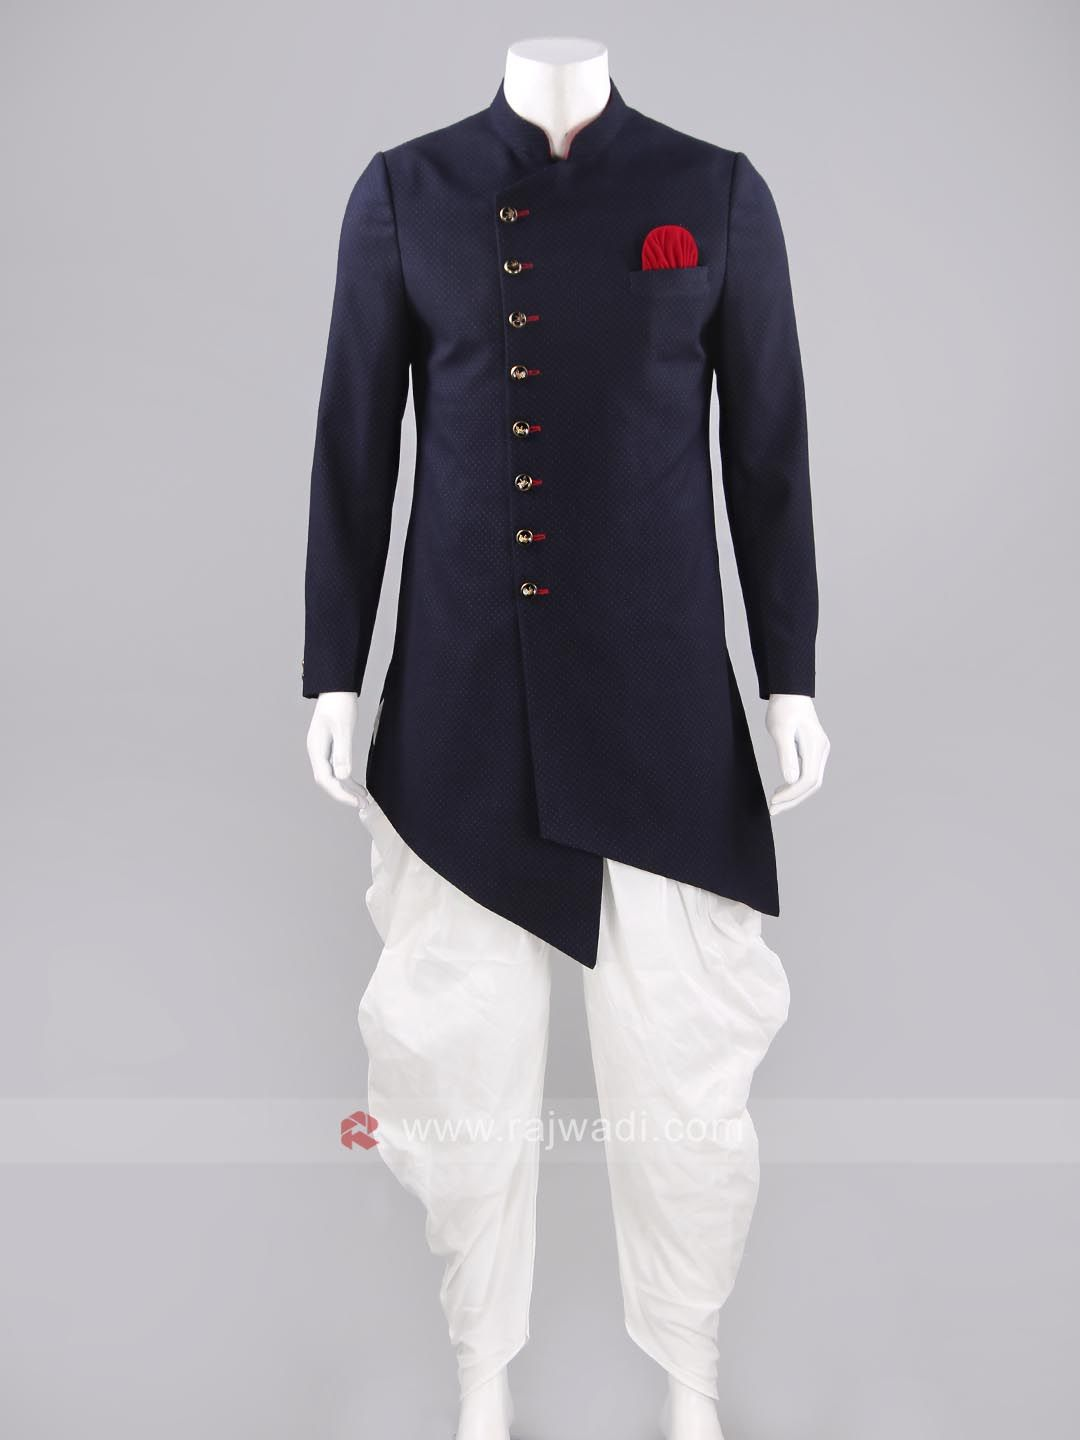 Imported material navy color indo western men mens fashion